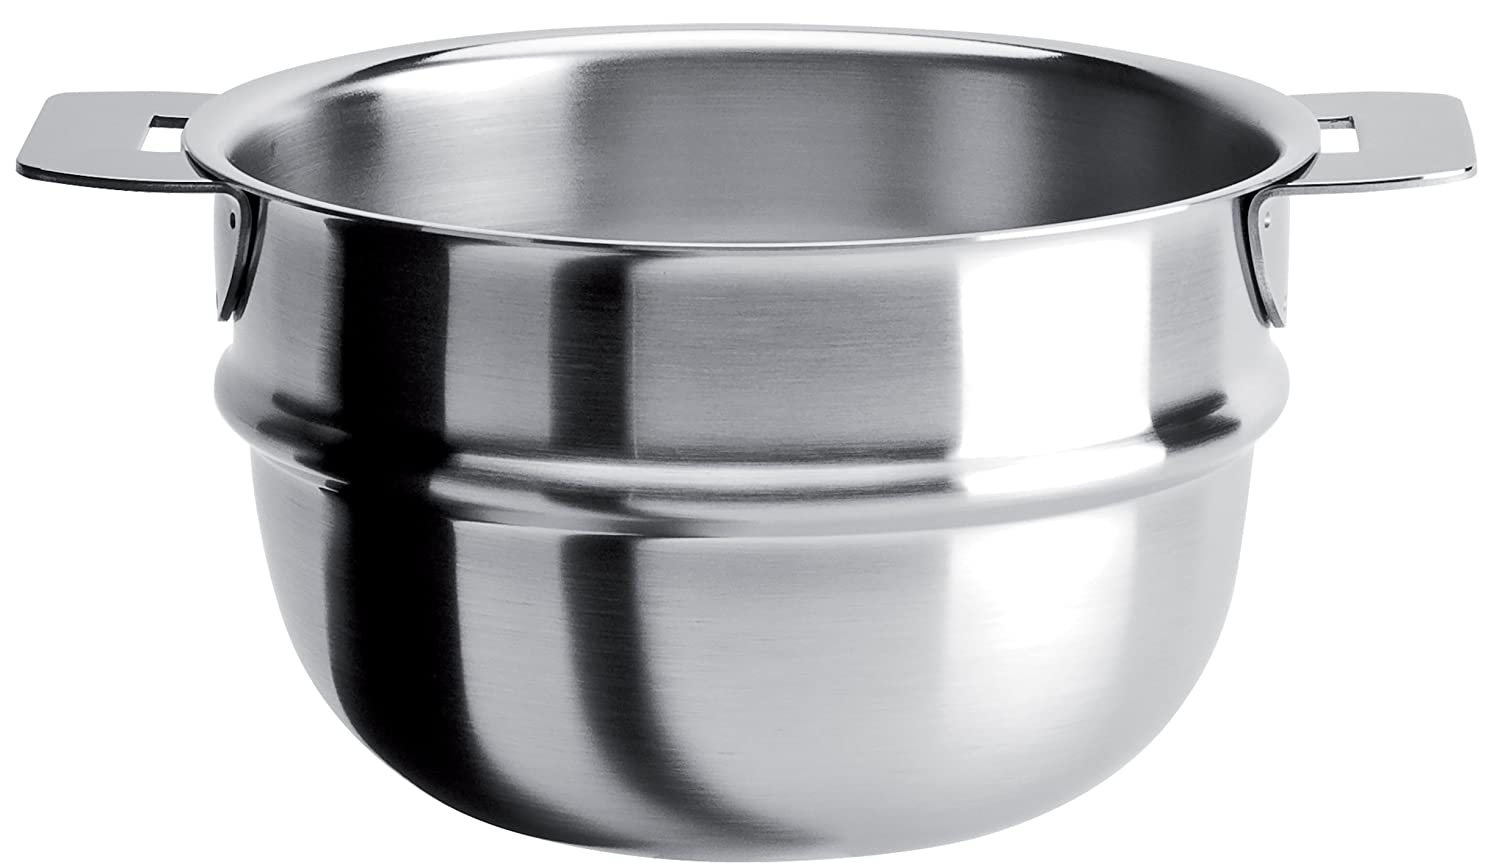 Cristel EMB12QL Strate Stainless Steel Removable Double Boiler EBM12QL